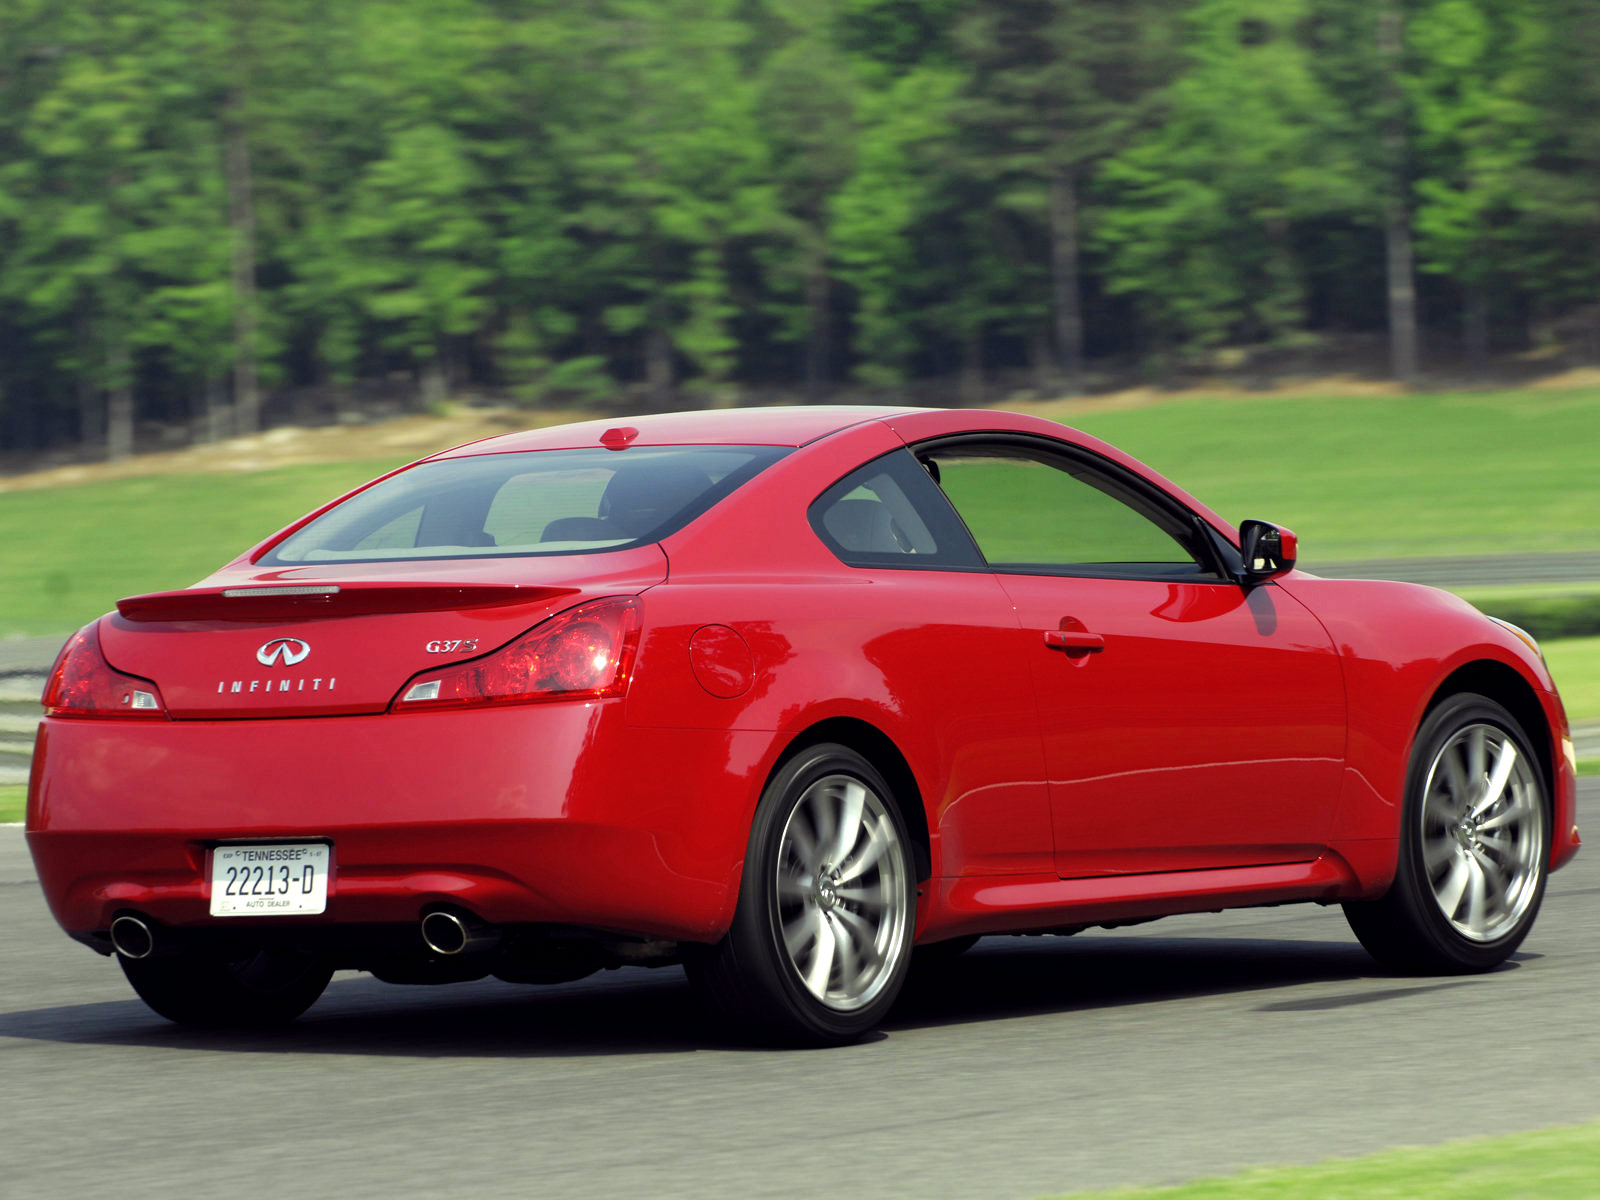 Luxury Vehicle: INFINITI G37 Coupe Wallpapers. Accident Lawyers Information